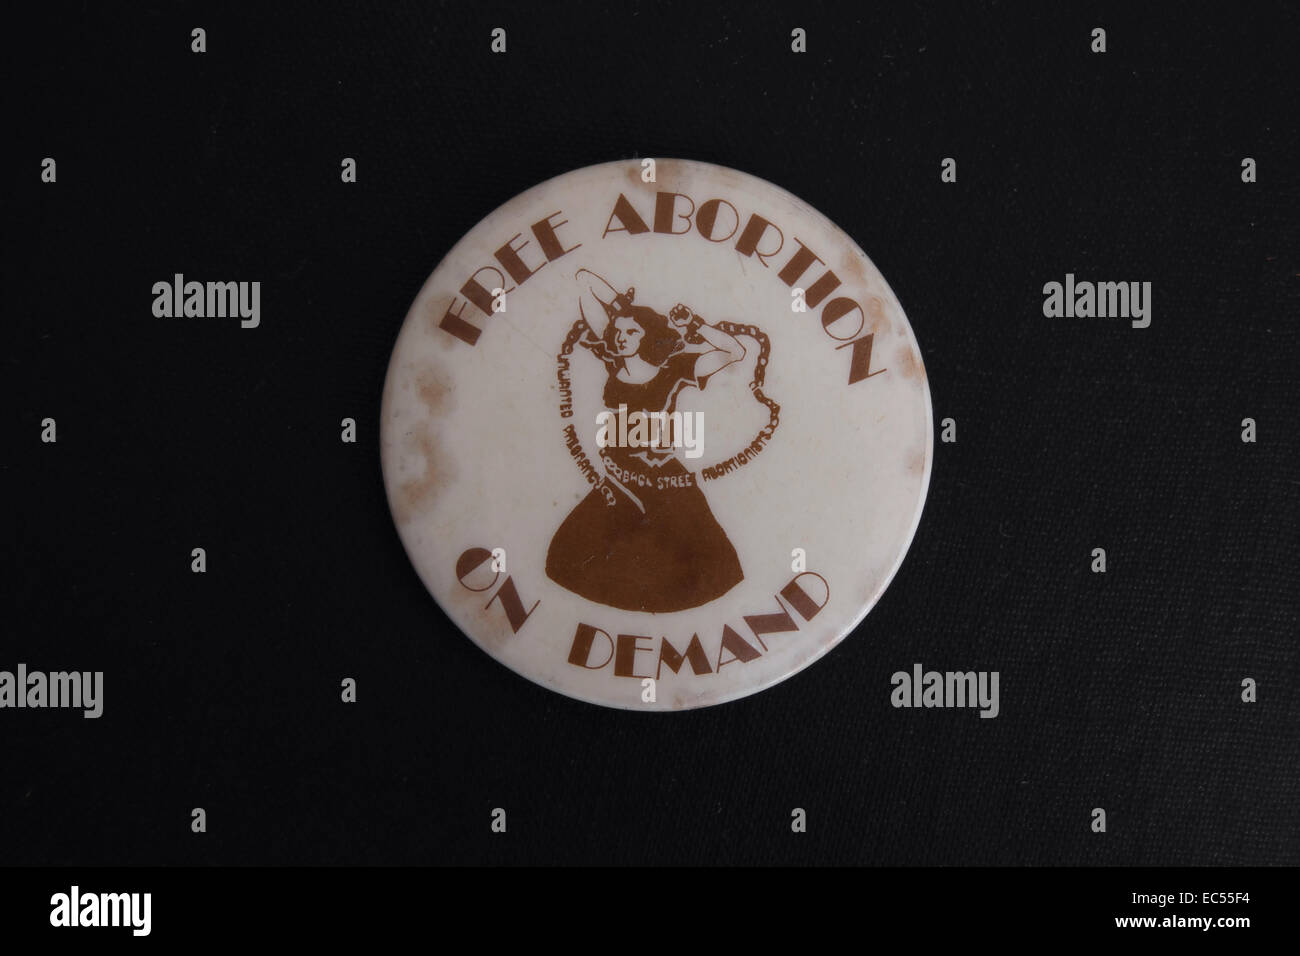 free abortion on demand lapel badge of the 1970s promoting the national abortion campaign in britain - Stock Image